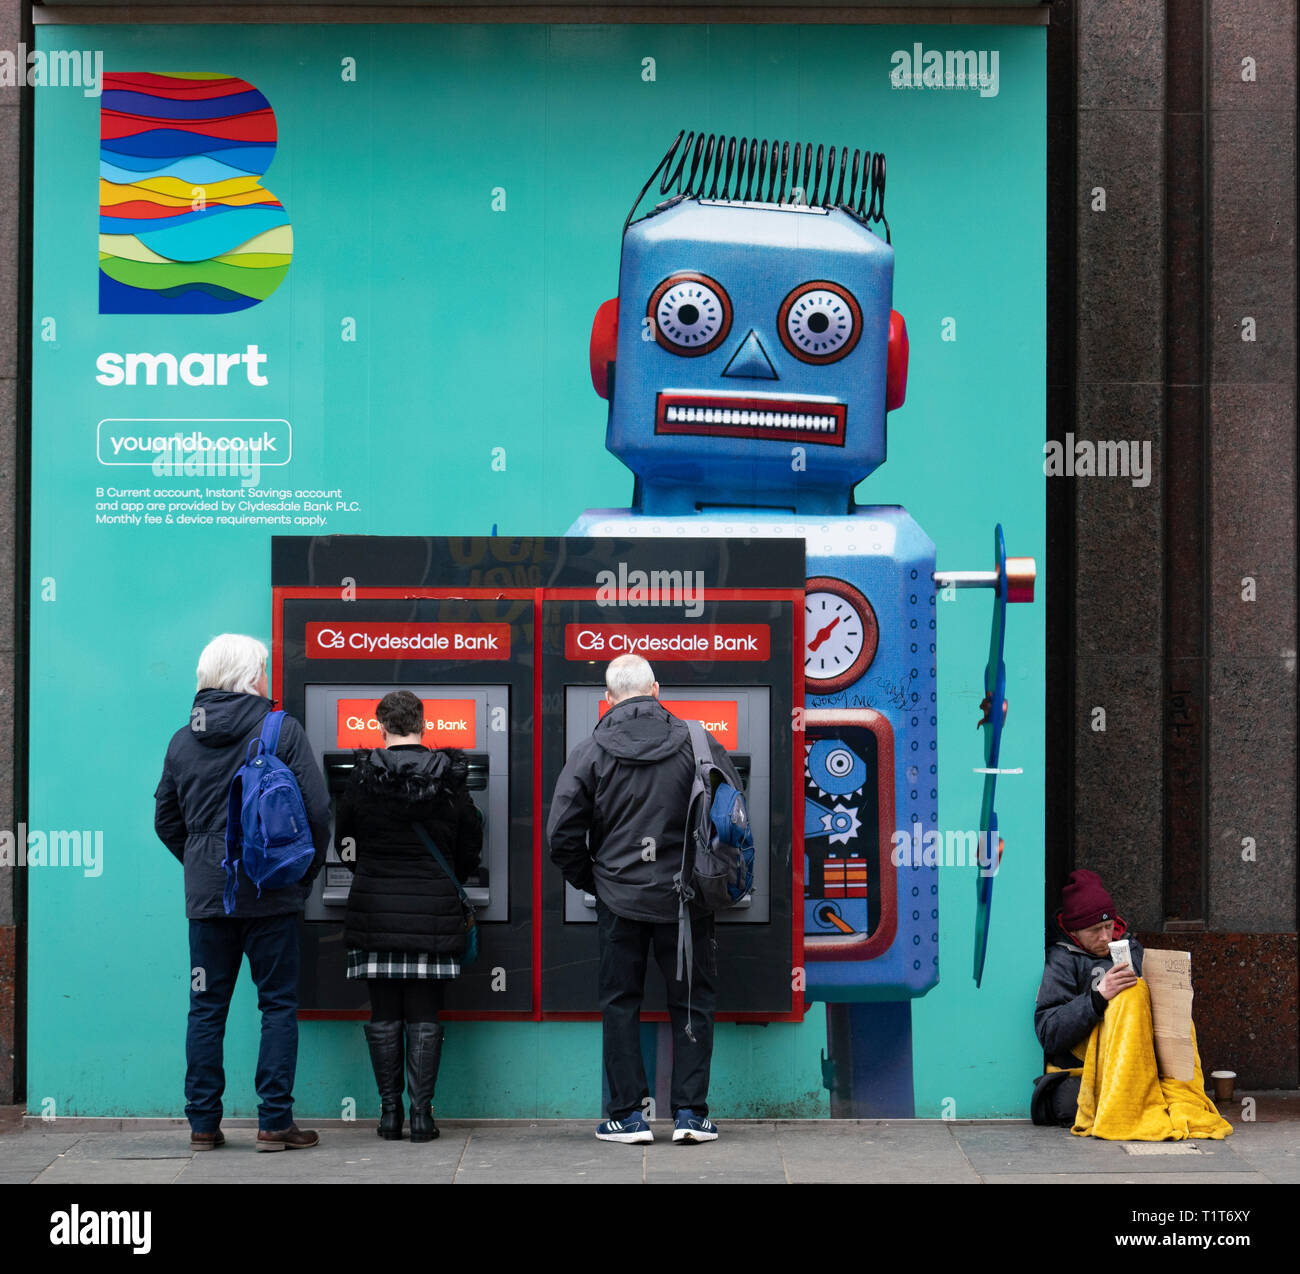 People using ATM machine next to homeless person in central Glasgow, Scotland UK - Stock Image